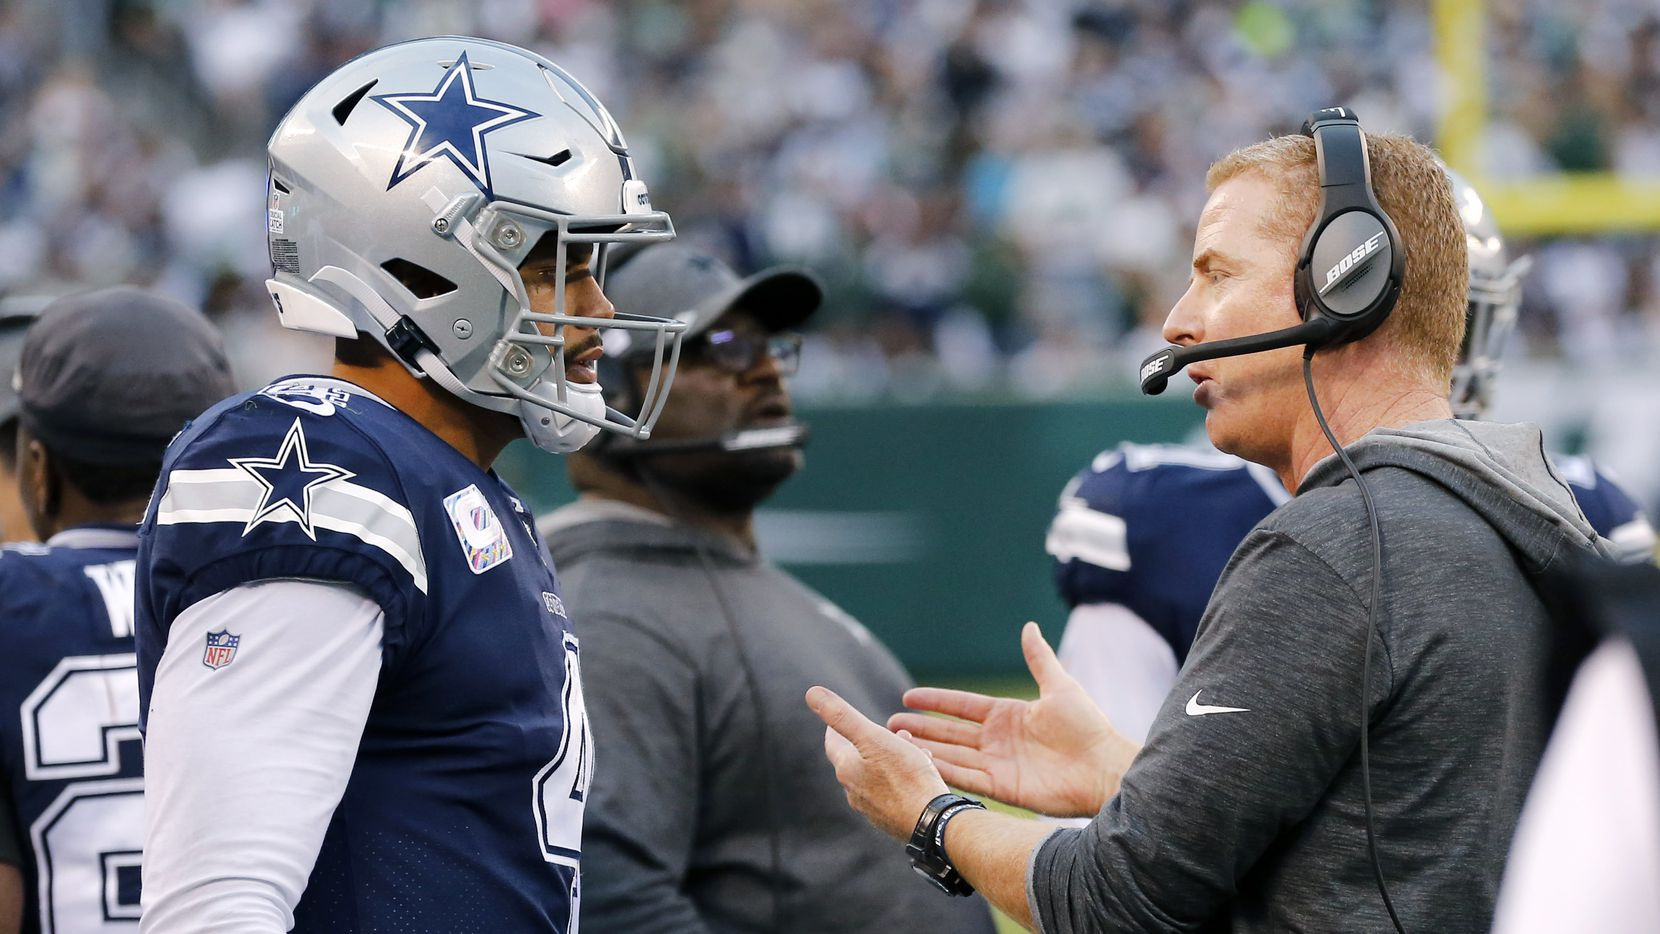 Dallas Cowboys head coach Jason Garrett confers with quarterback Dak Prescott (4) before he heads back on the field in the first half against the New York Jets at MetLife Stadium in East Rutherford, New Jersey, Sunday, October 13, 2019.